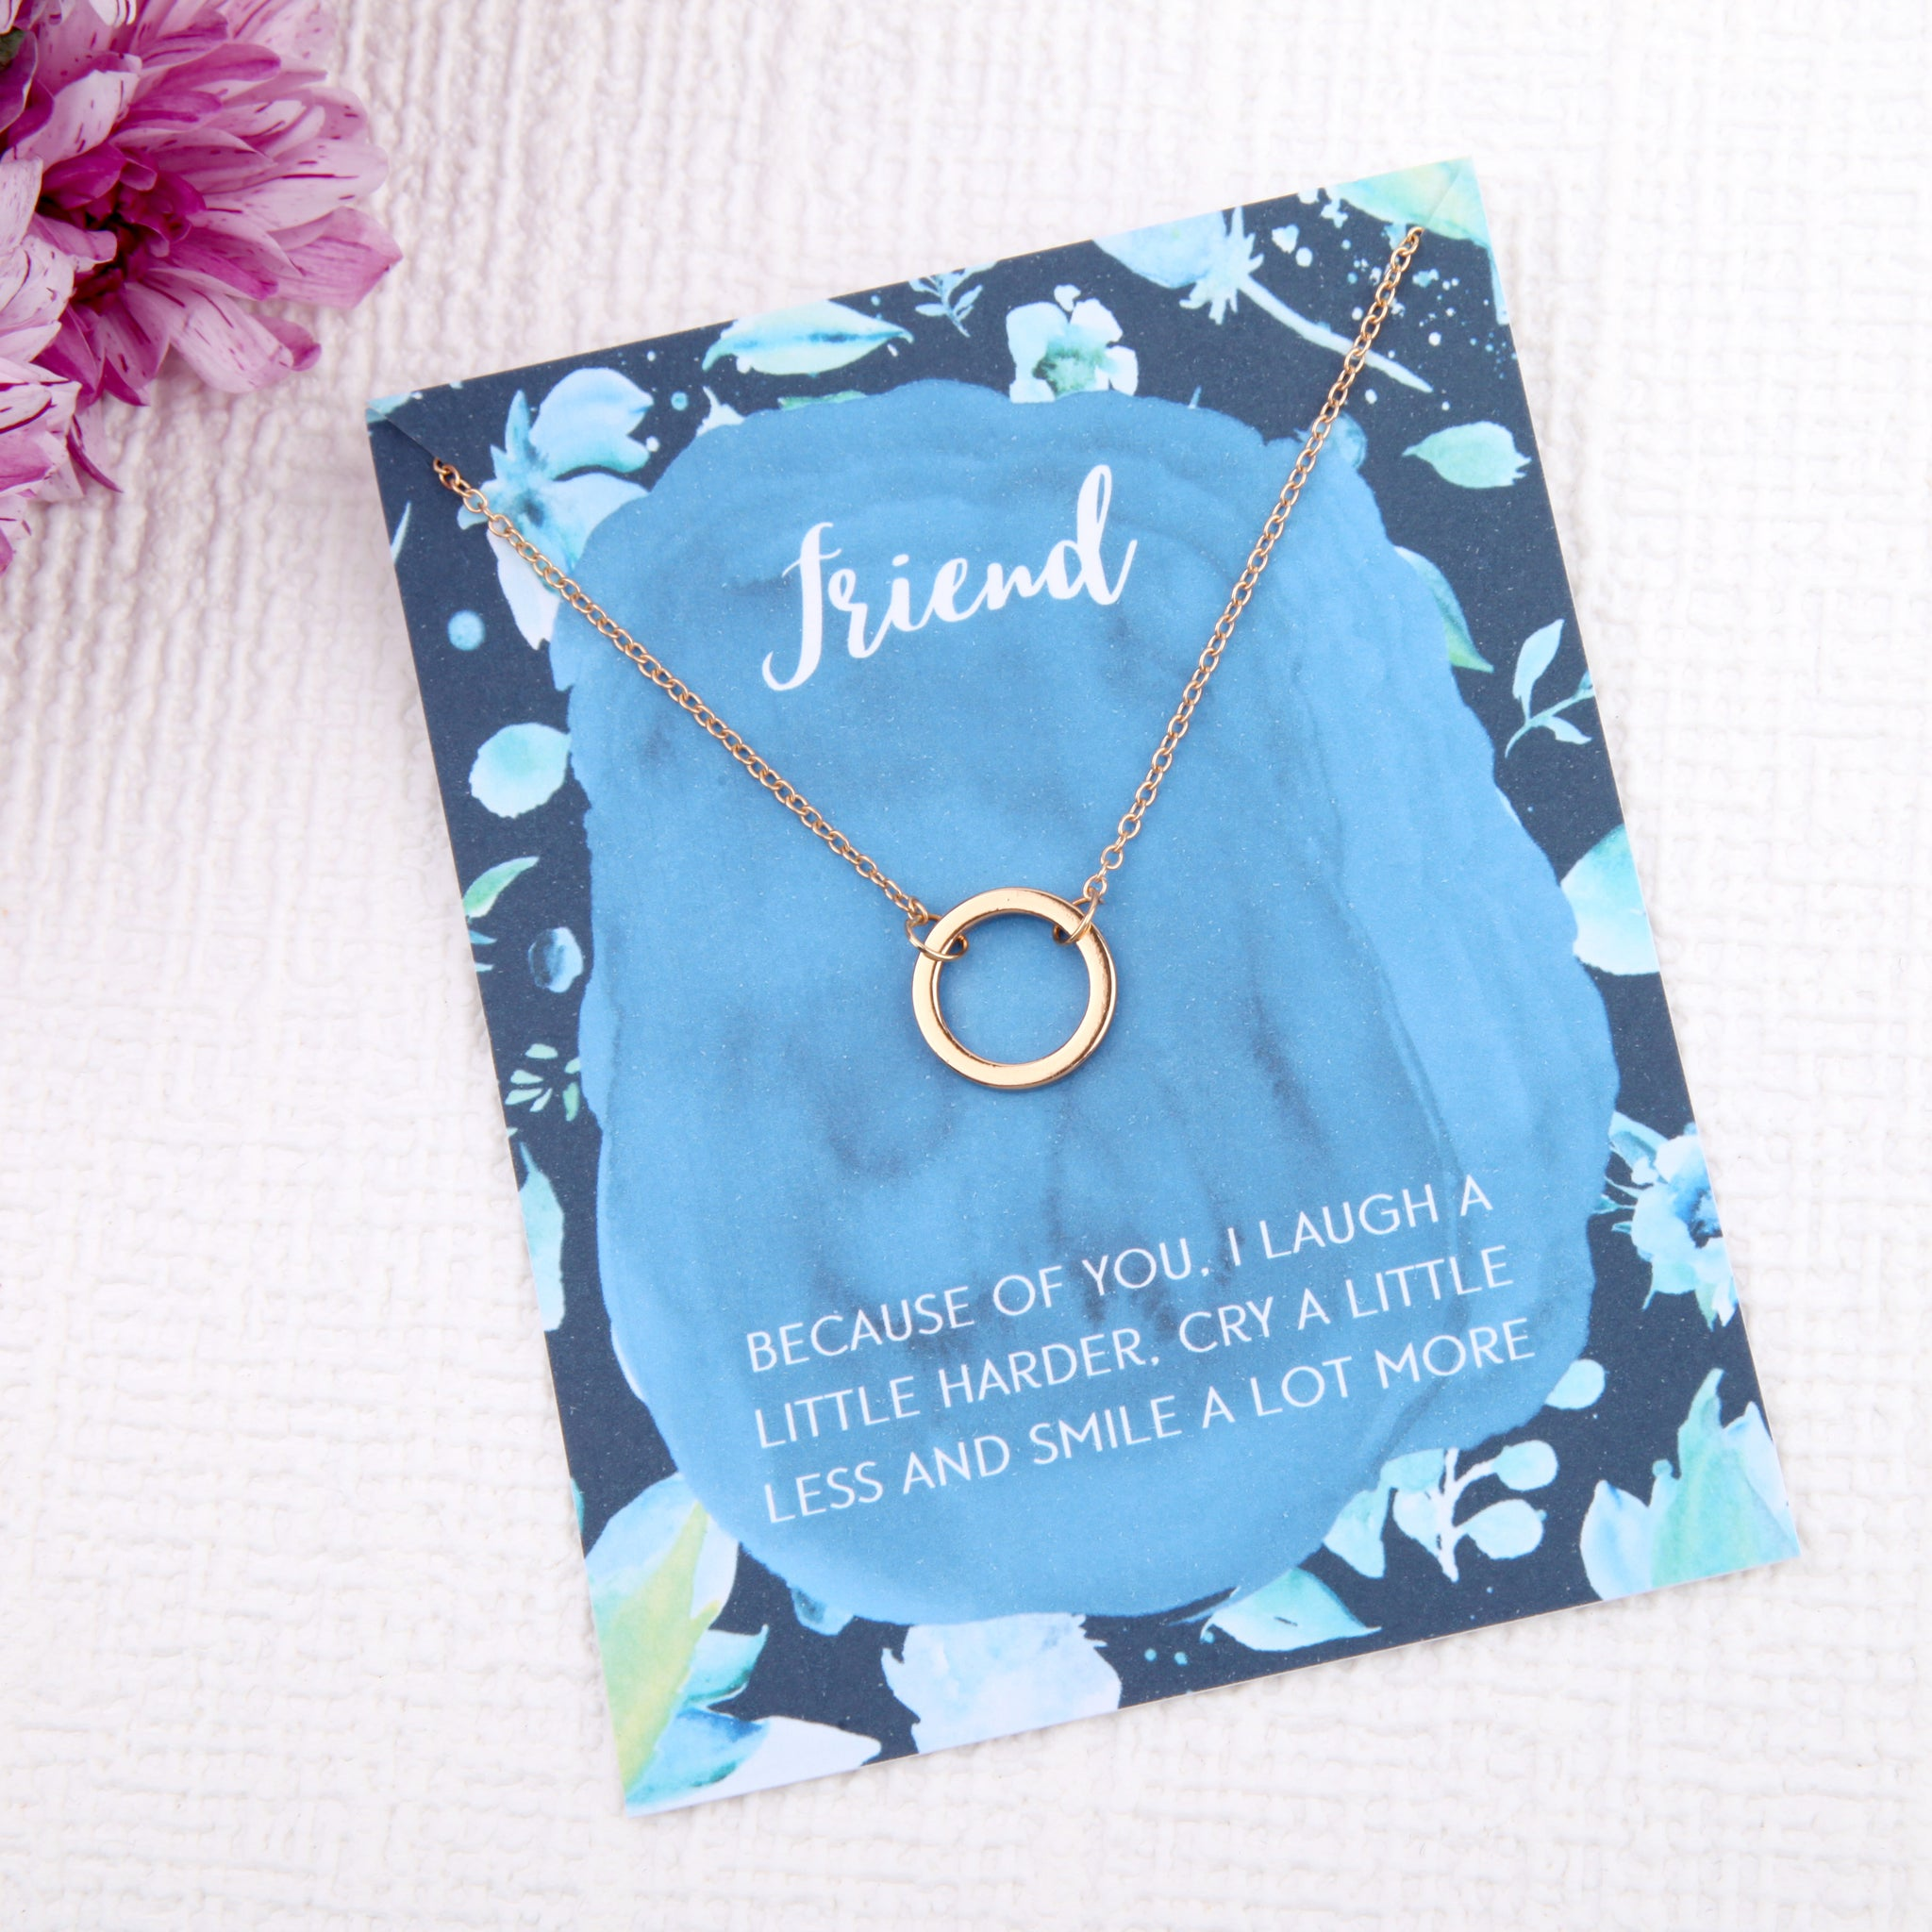 friendship bff gifts circles message card necklace - Statement Made Jewellery